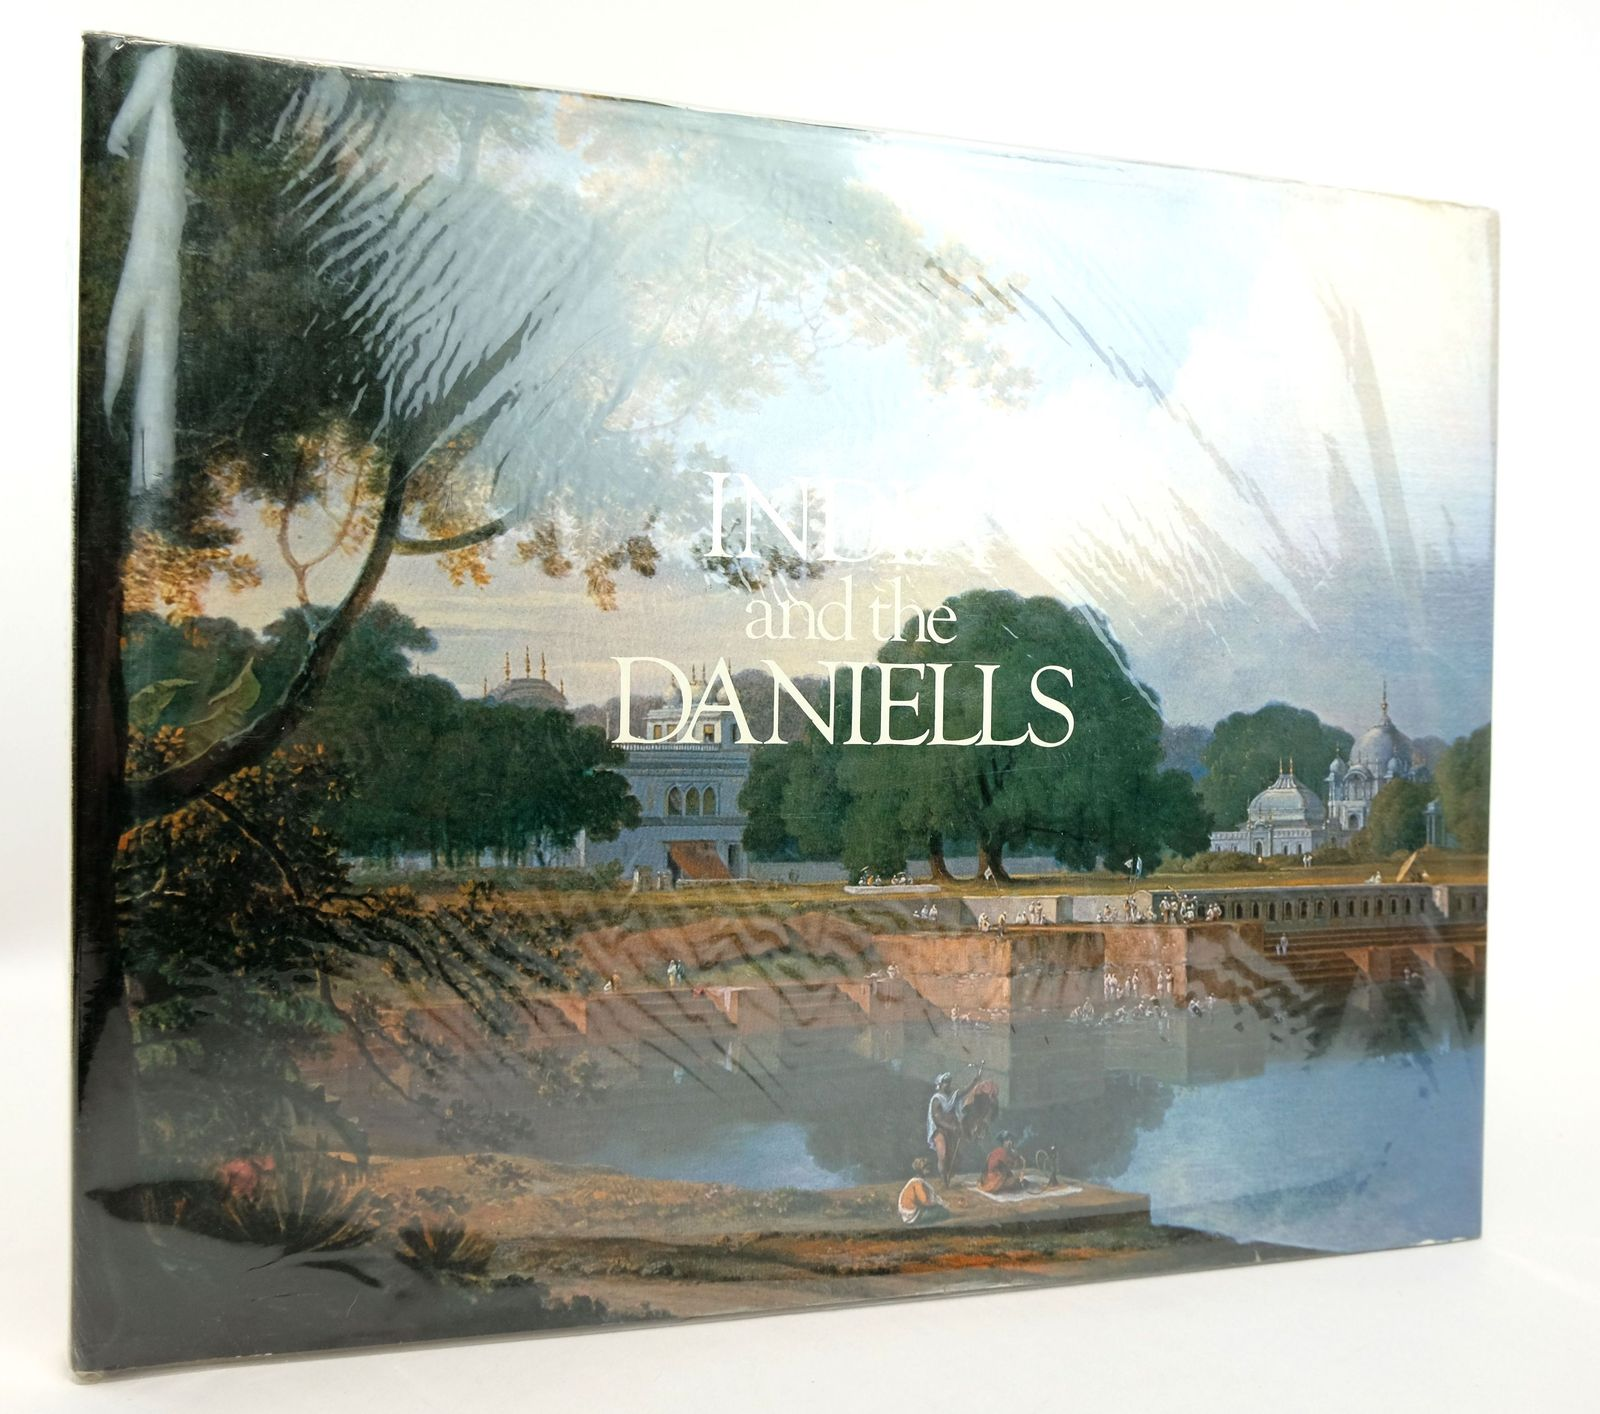 Photo of OIL PAINTINGS OF INDIA AND THE EAST BY THOMAS DANIELL RA 1749-1840 AND WILLIAM DANIELL RA 1969-1837 written by Shellim, Maurice illustrated by Daniell, Thomas